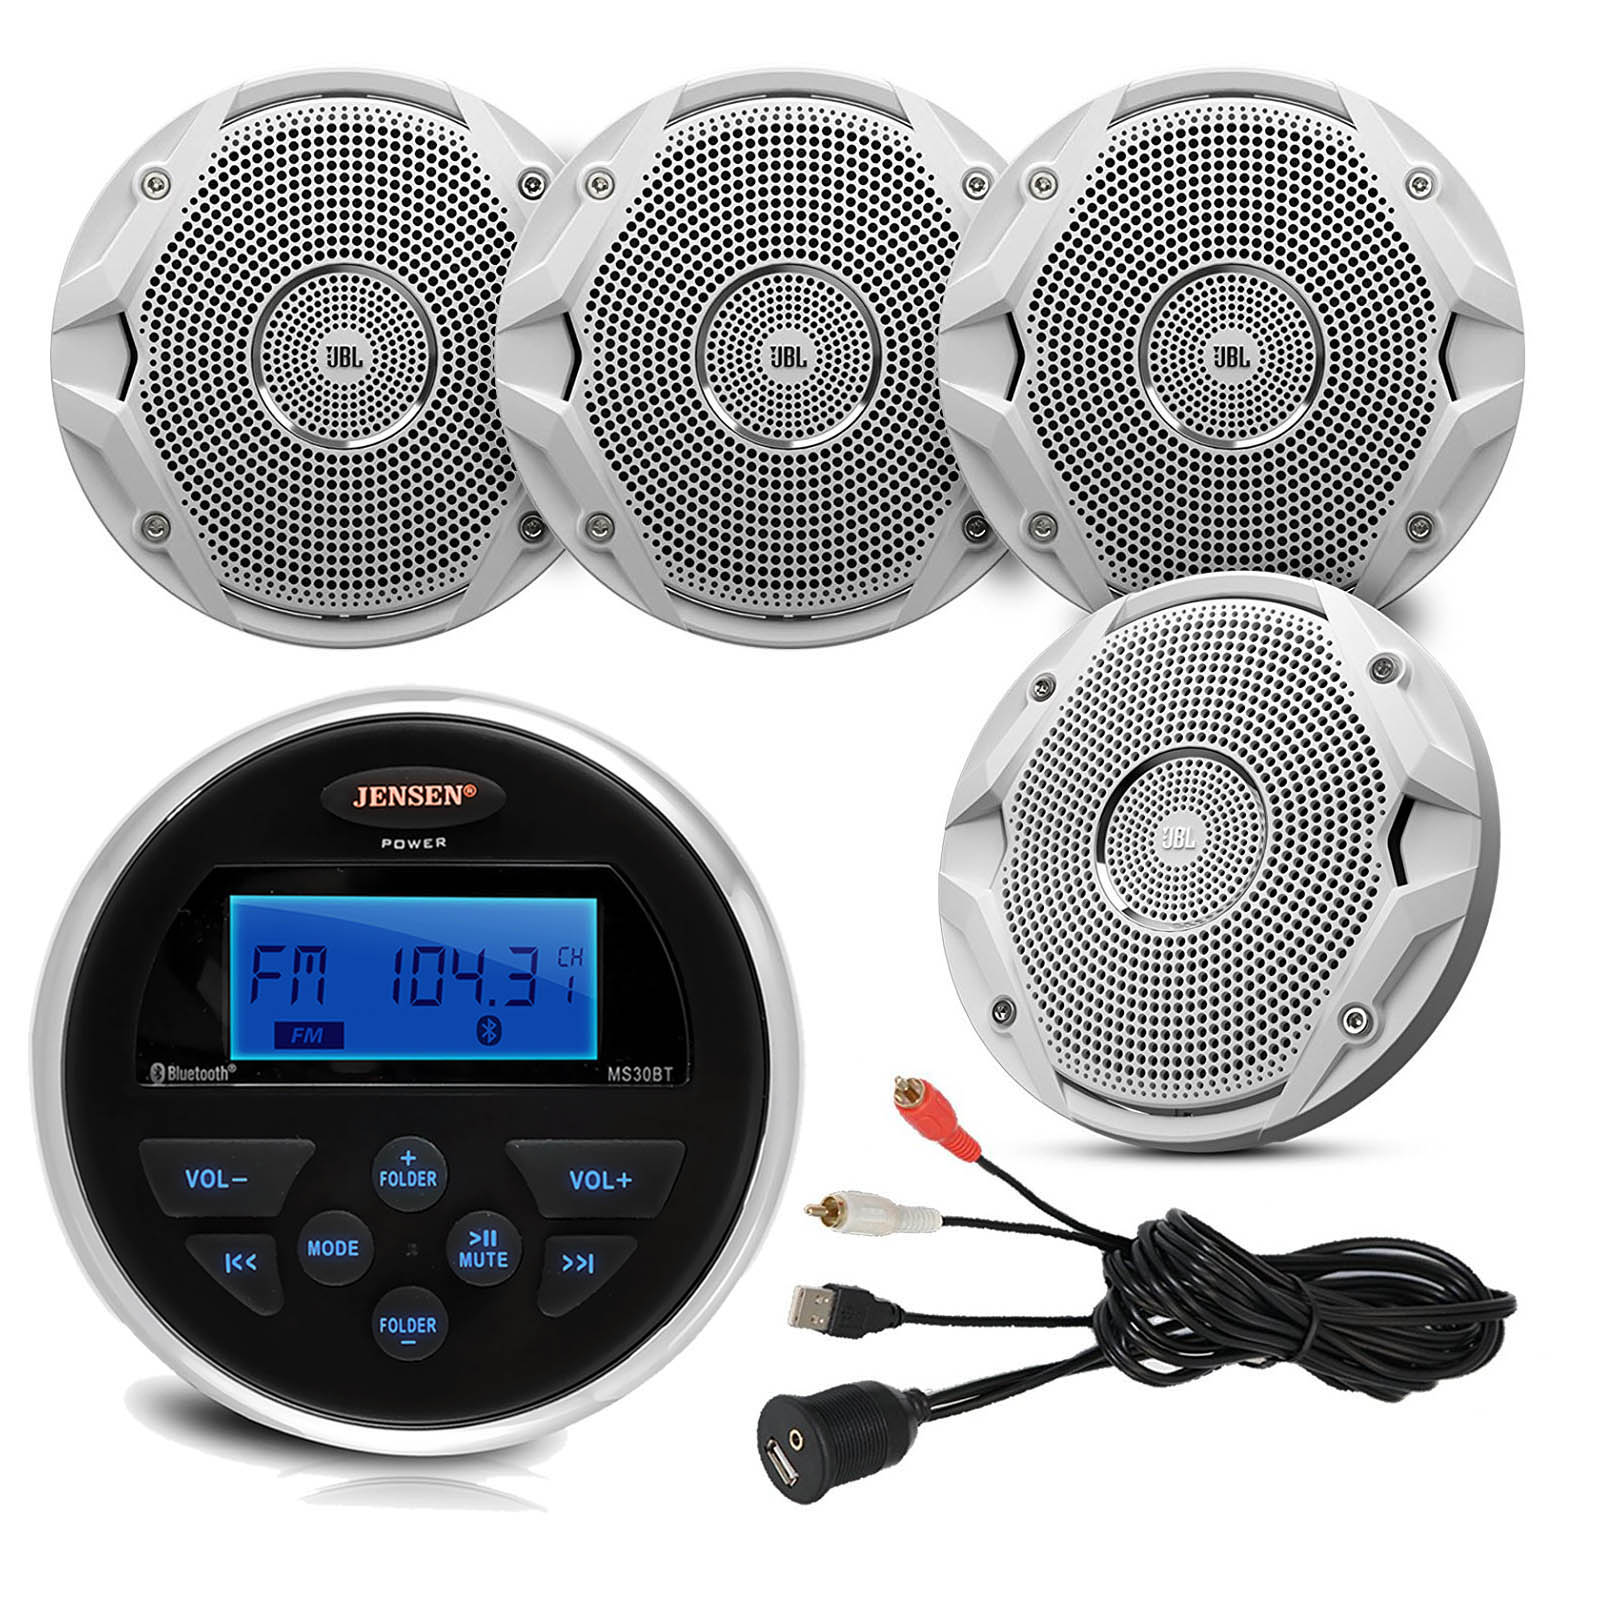 "Jensen MS30BTR Gauge Style Marine Yacht ATV Motorcycle Waterproof Stereo Bundle Combo With 4 x JBL MS6510 6.5"" Inch Boat Speakers + Enrock Universal USB / AUX To RCA 10"" Extension Cable"